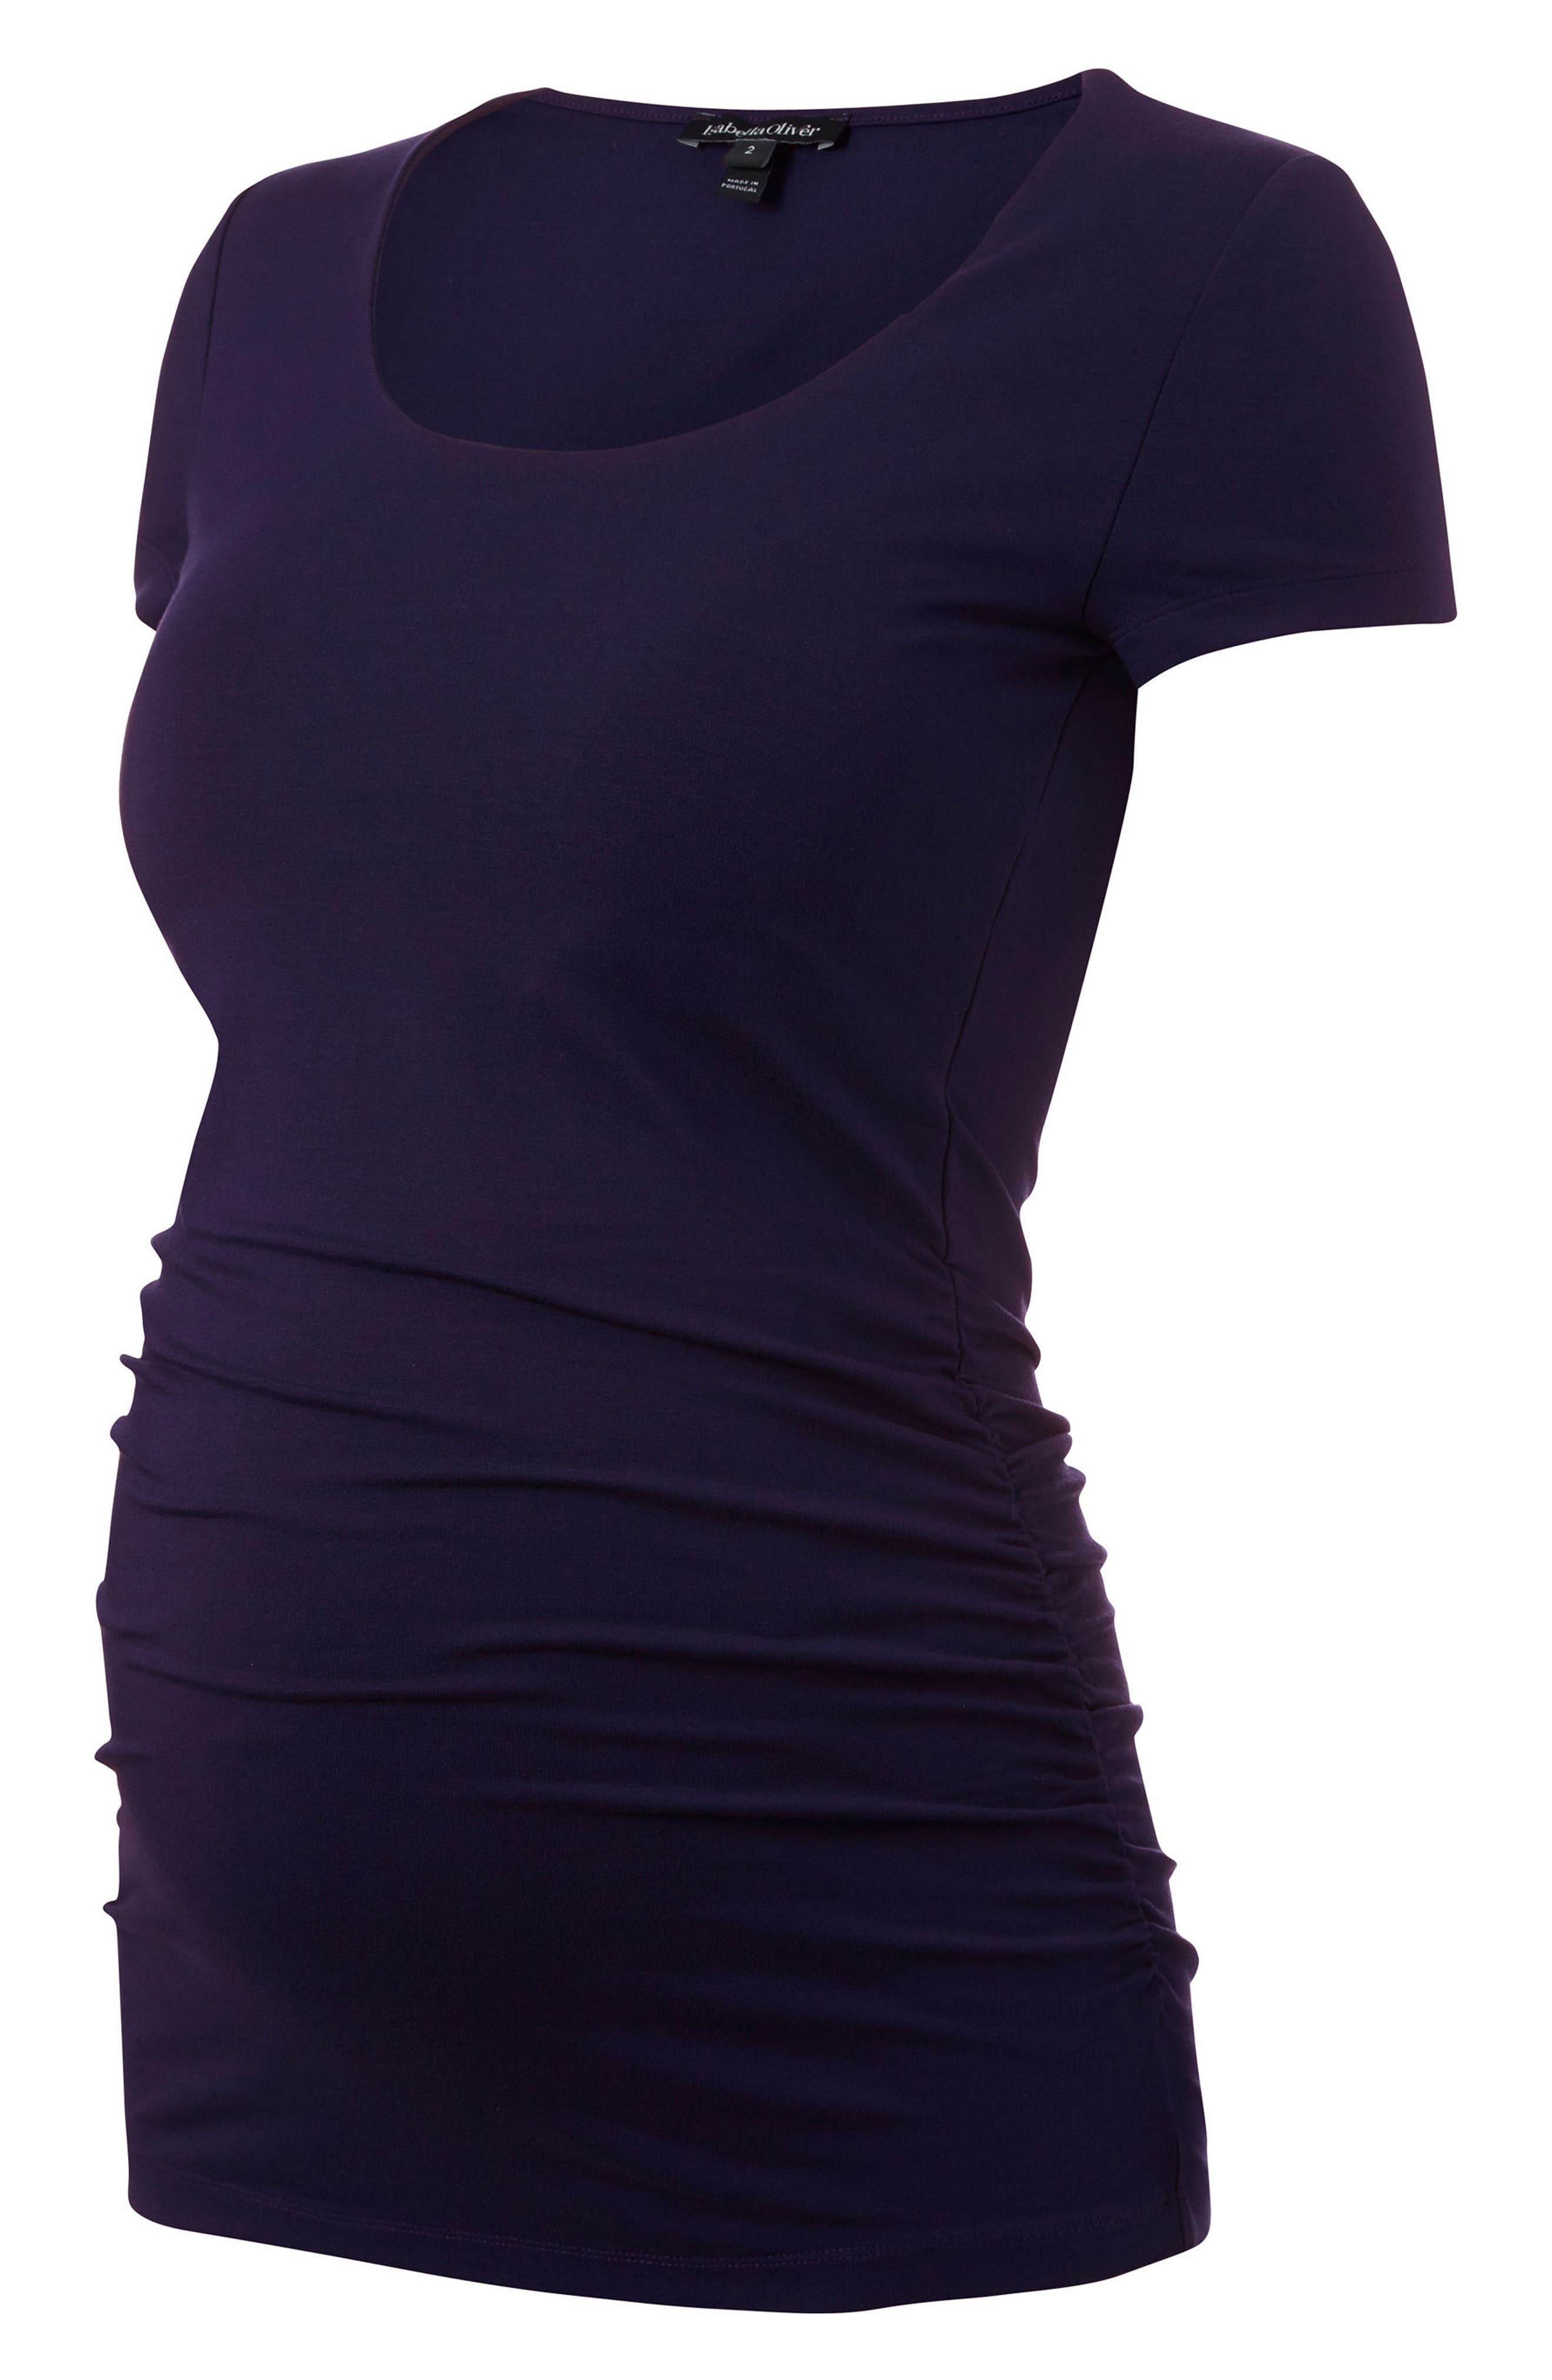 Main Image - Isabella Oliver Scoop Neck Maternity Tee